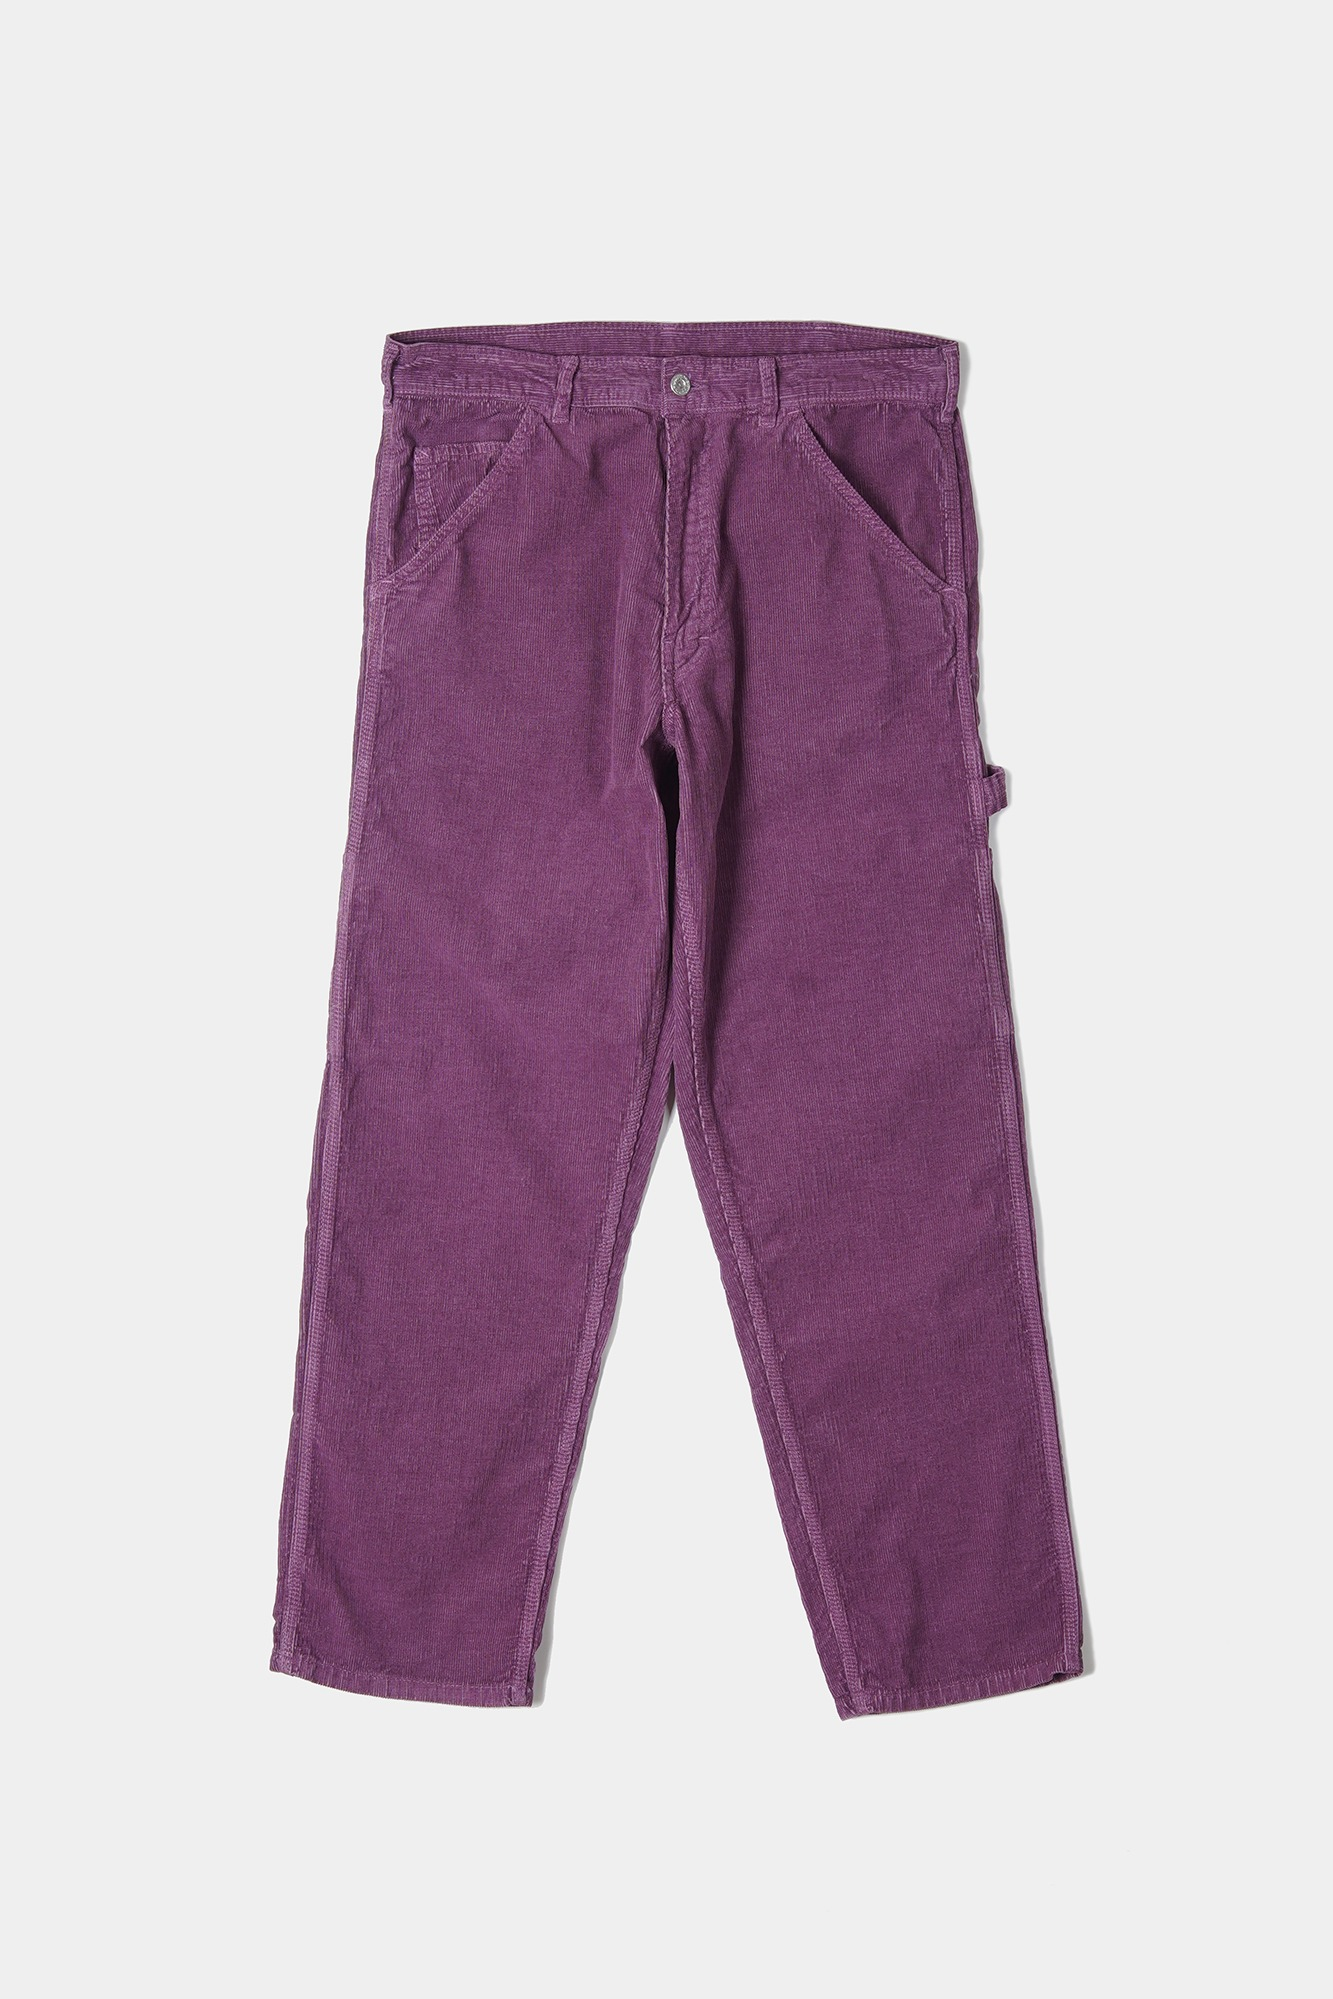 "STAN RAY OG Painter Pants Cord ""Crushed Purple Cord"""